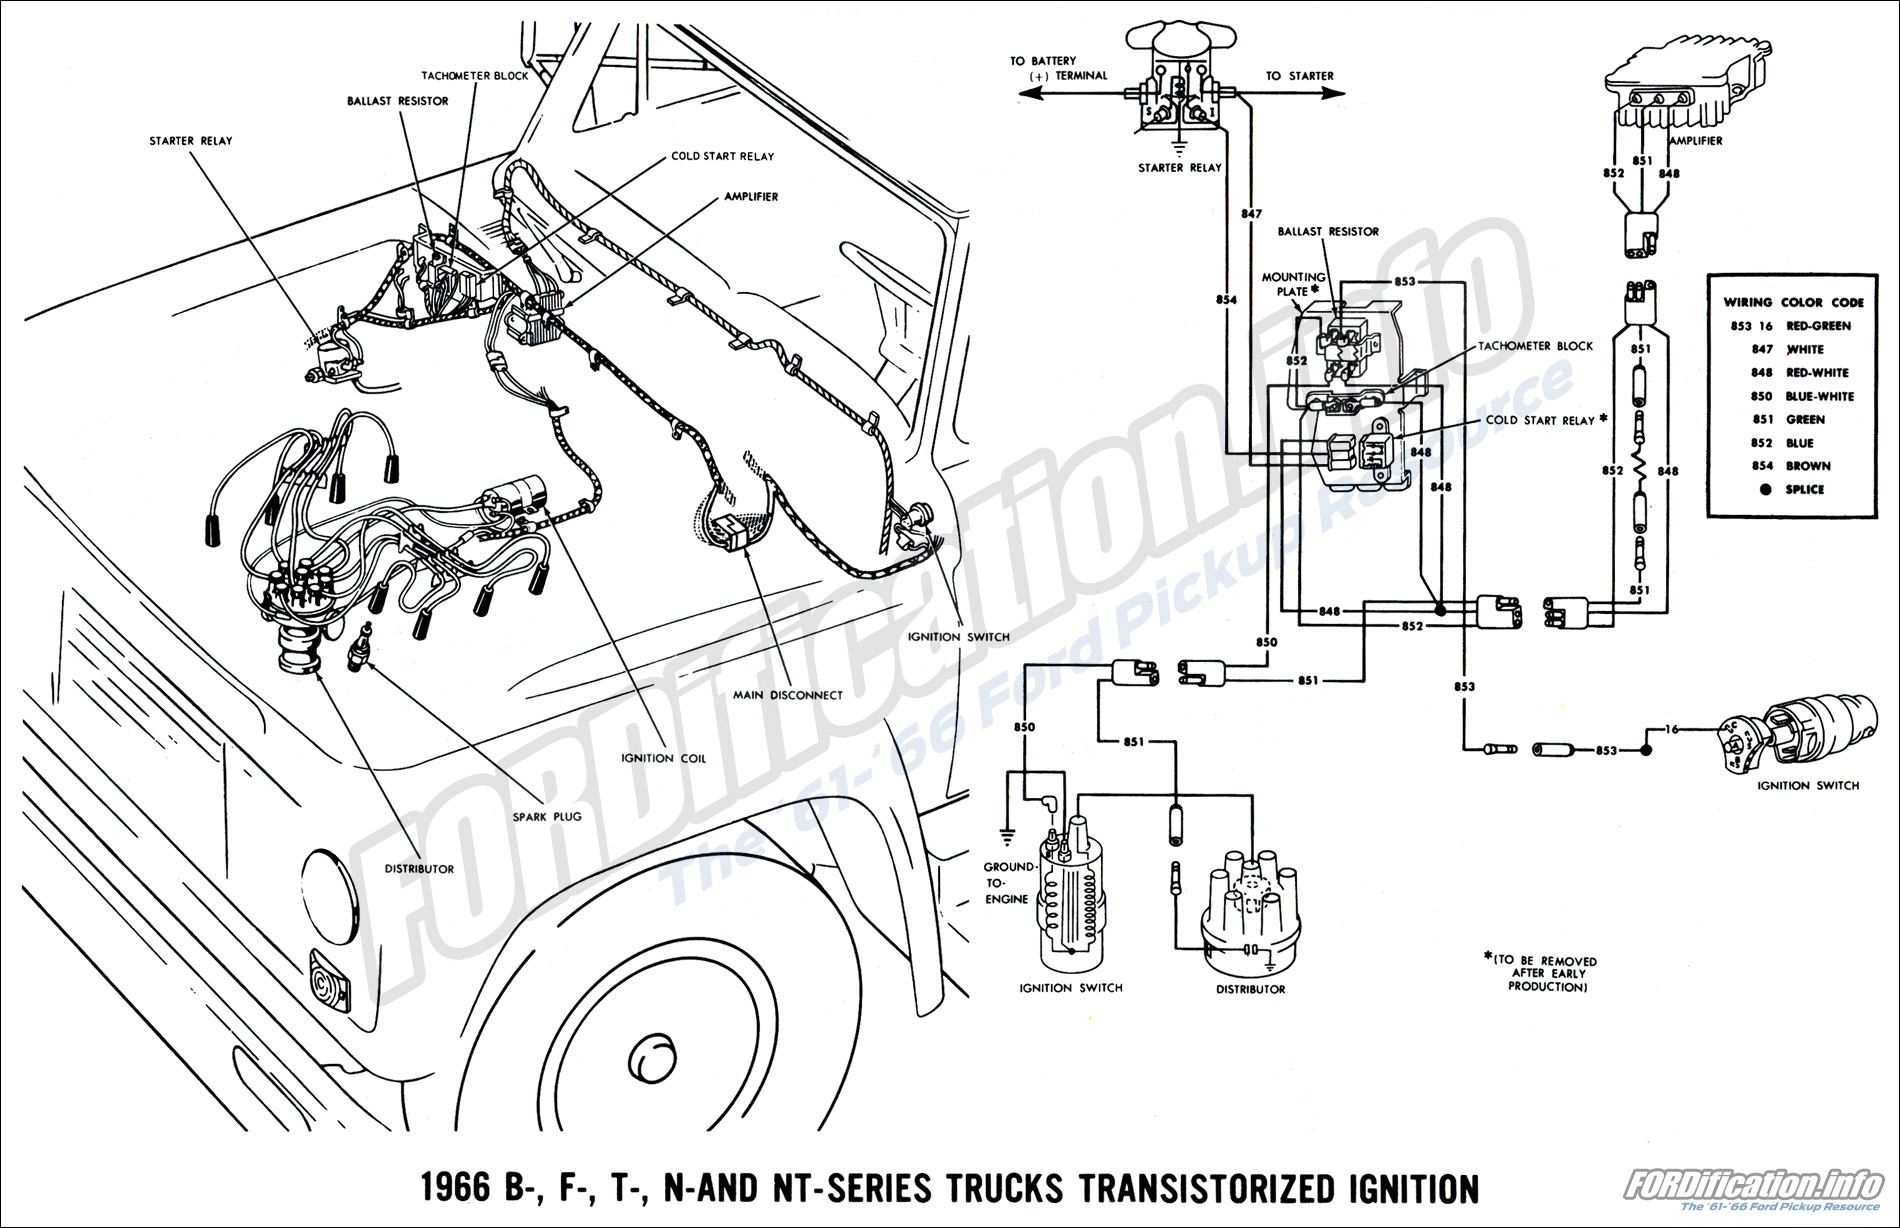 1964 ford truck wiring diagram wiring diagram detailed1964 ford truck wiring diagram wiring diagrams clicks 1964 ford truck engine 1964 ford truck wiring diagram